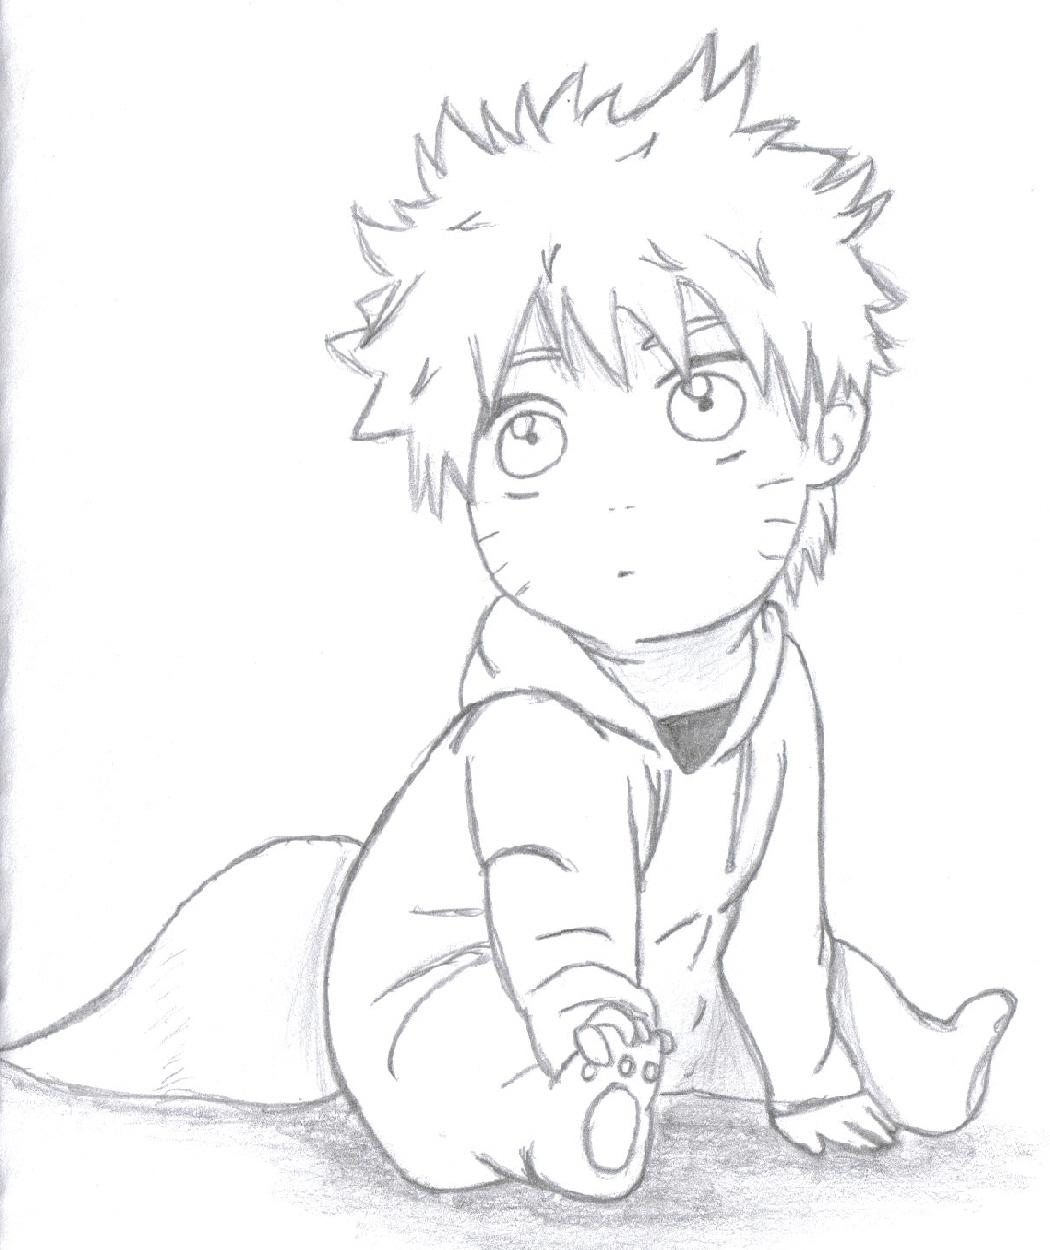 Naruto the way of naruto kawaii nee u de naruta95 - Naruto uzumaki dessin ...